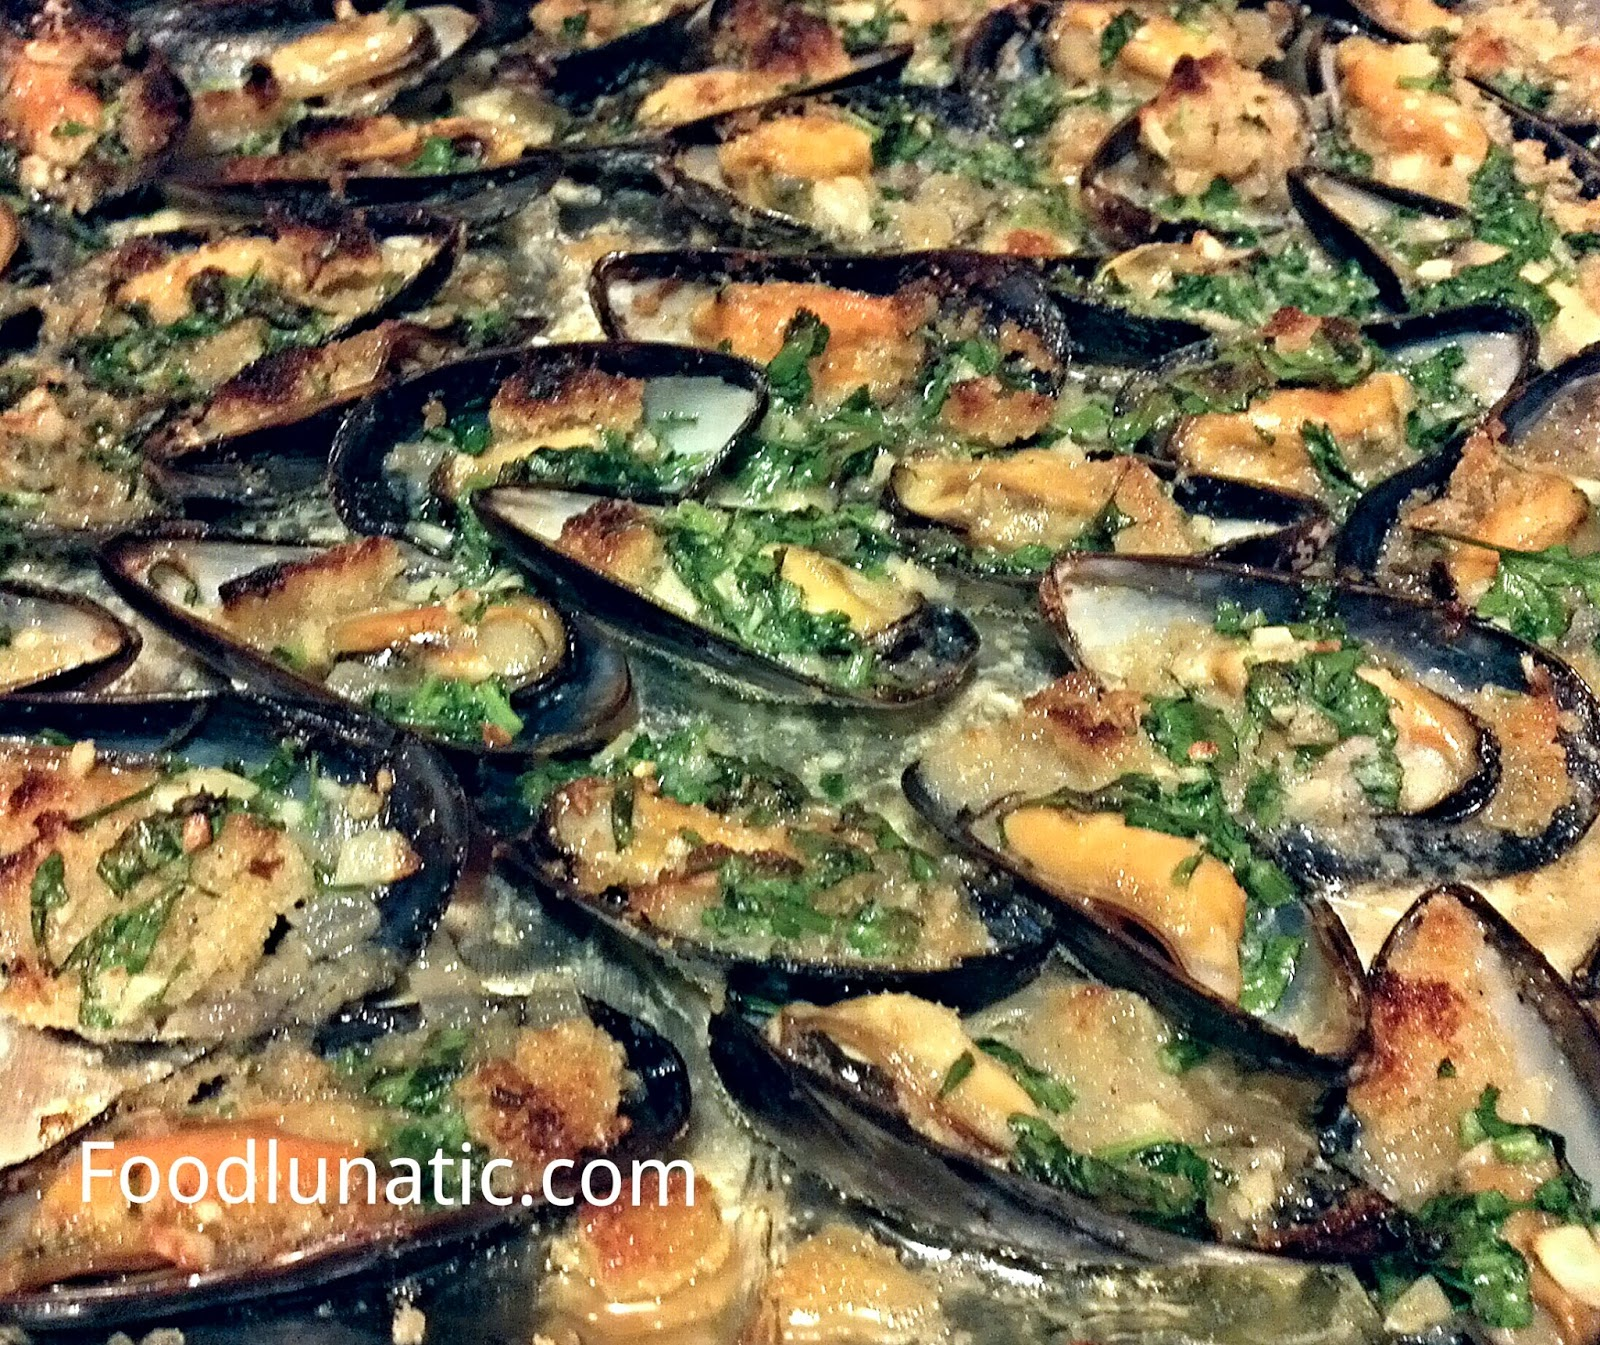 ... loves this mussel appetizer recipe this dish combines mussels with